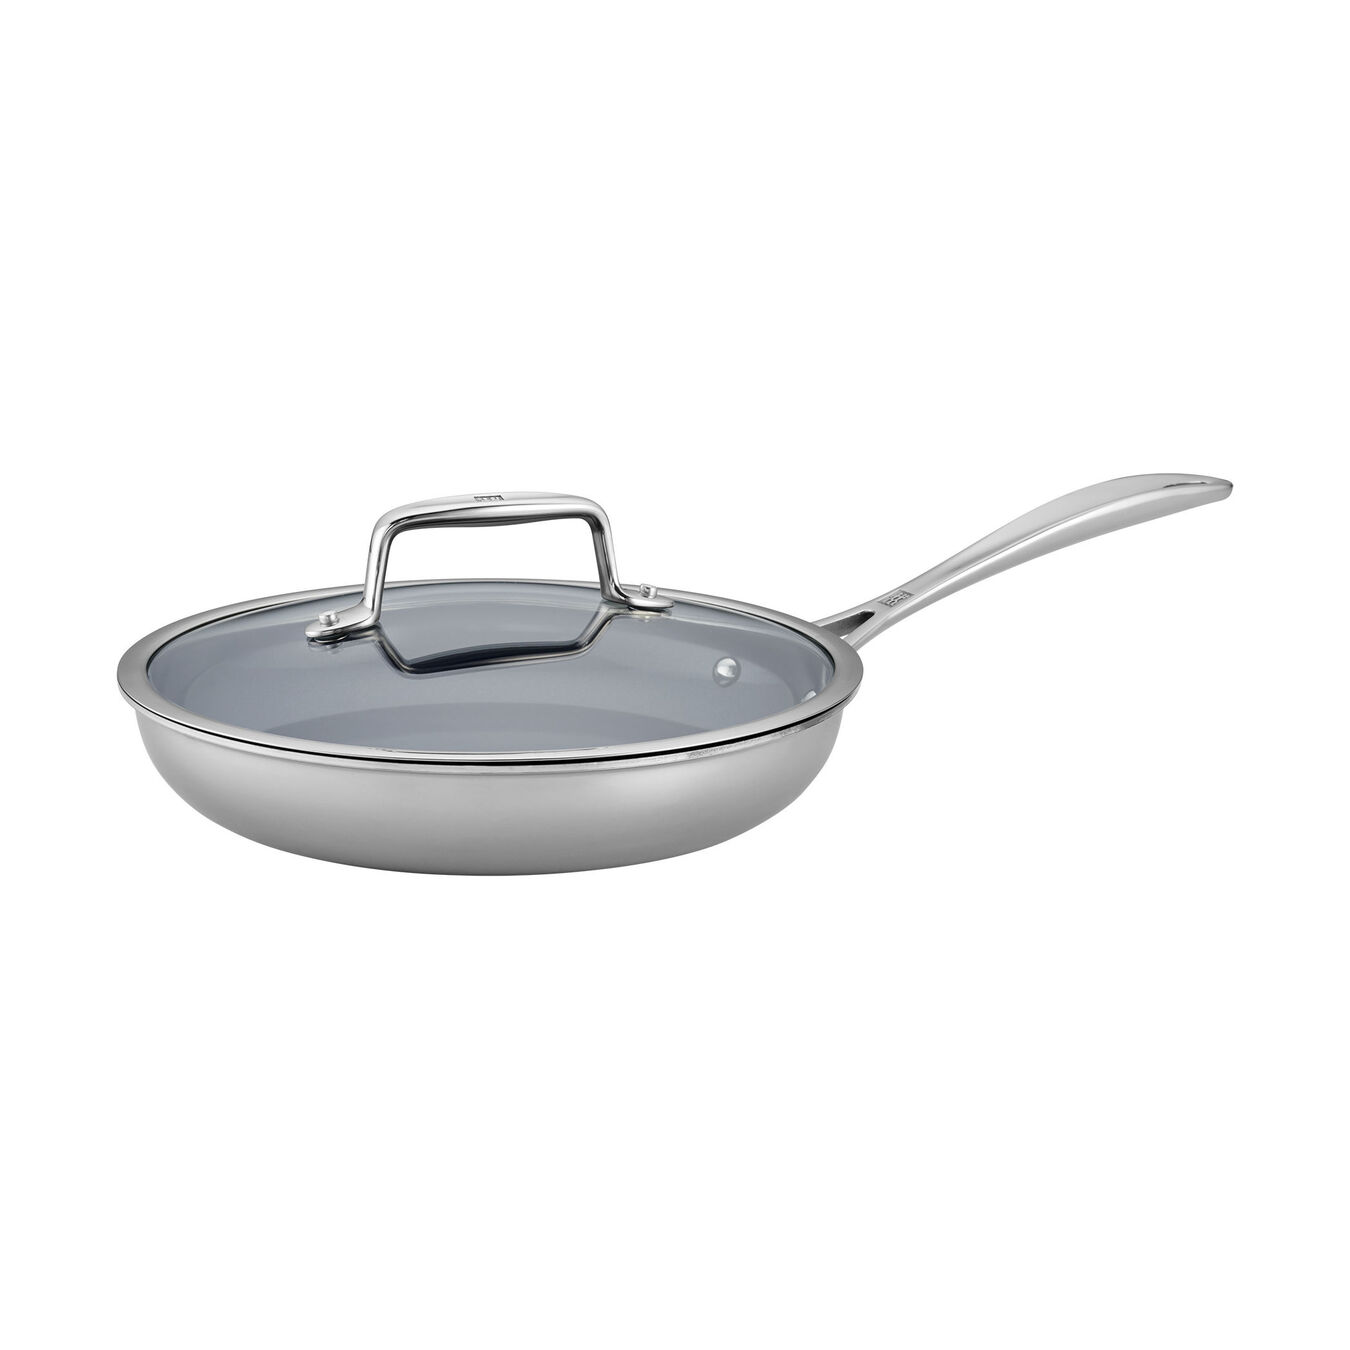 2-pc Stainless Steel Ceramic Nonstick Fry Pan with Lid Set,,large 1